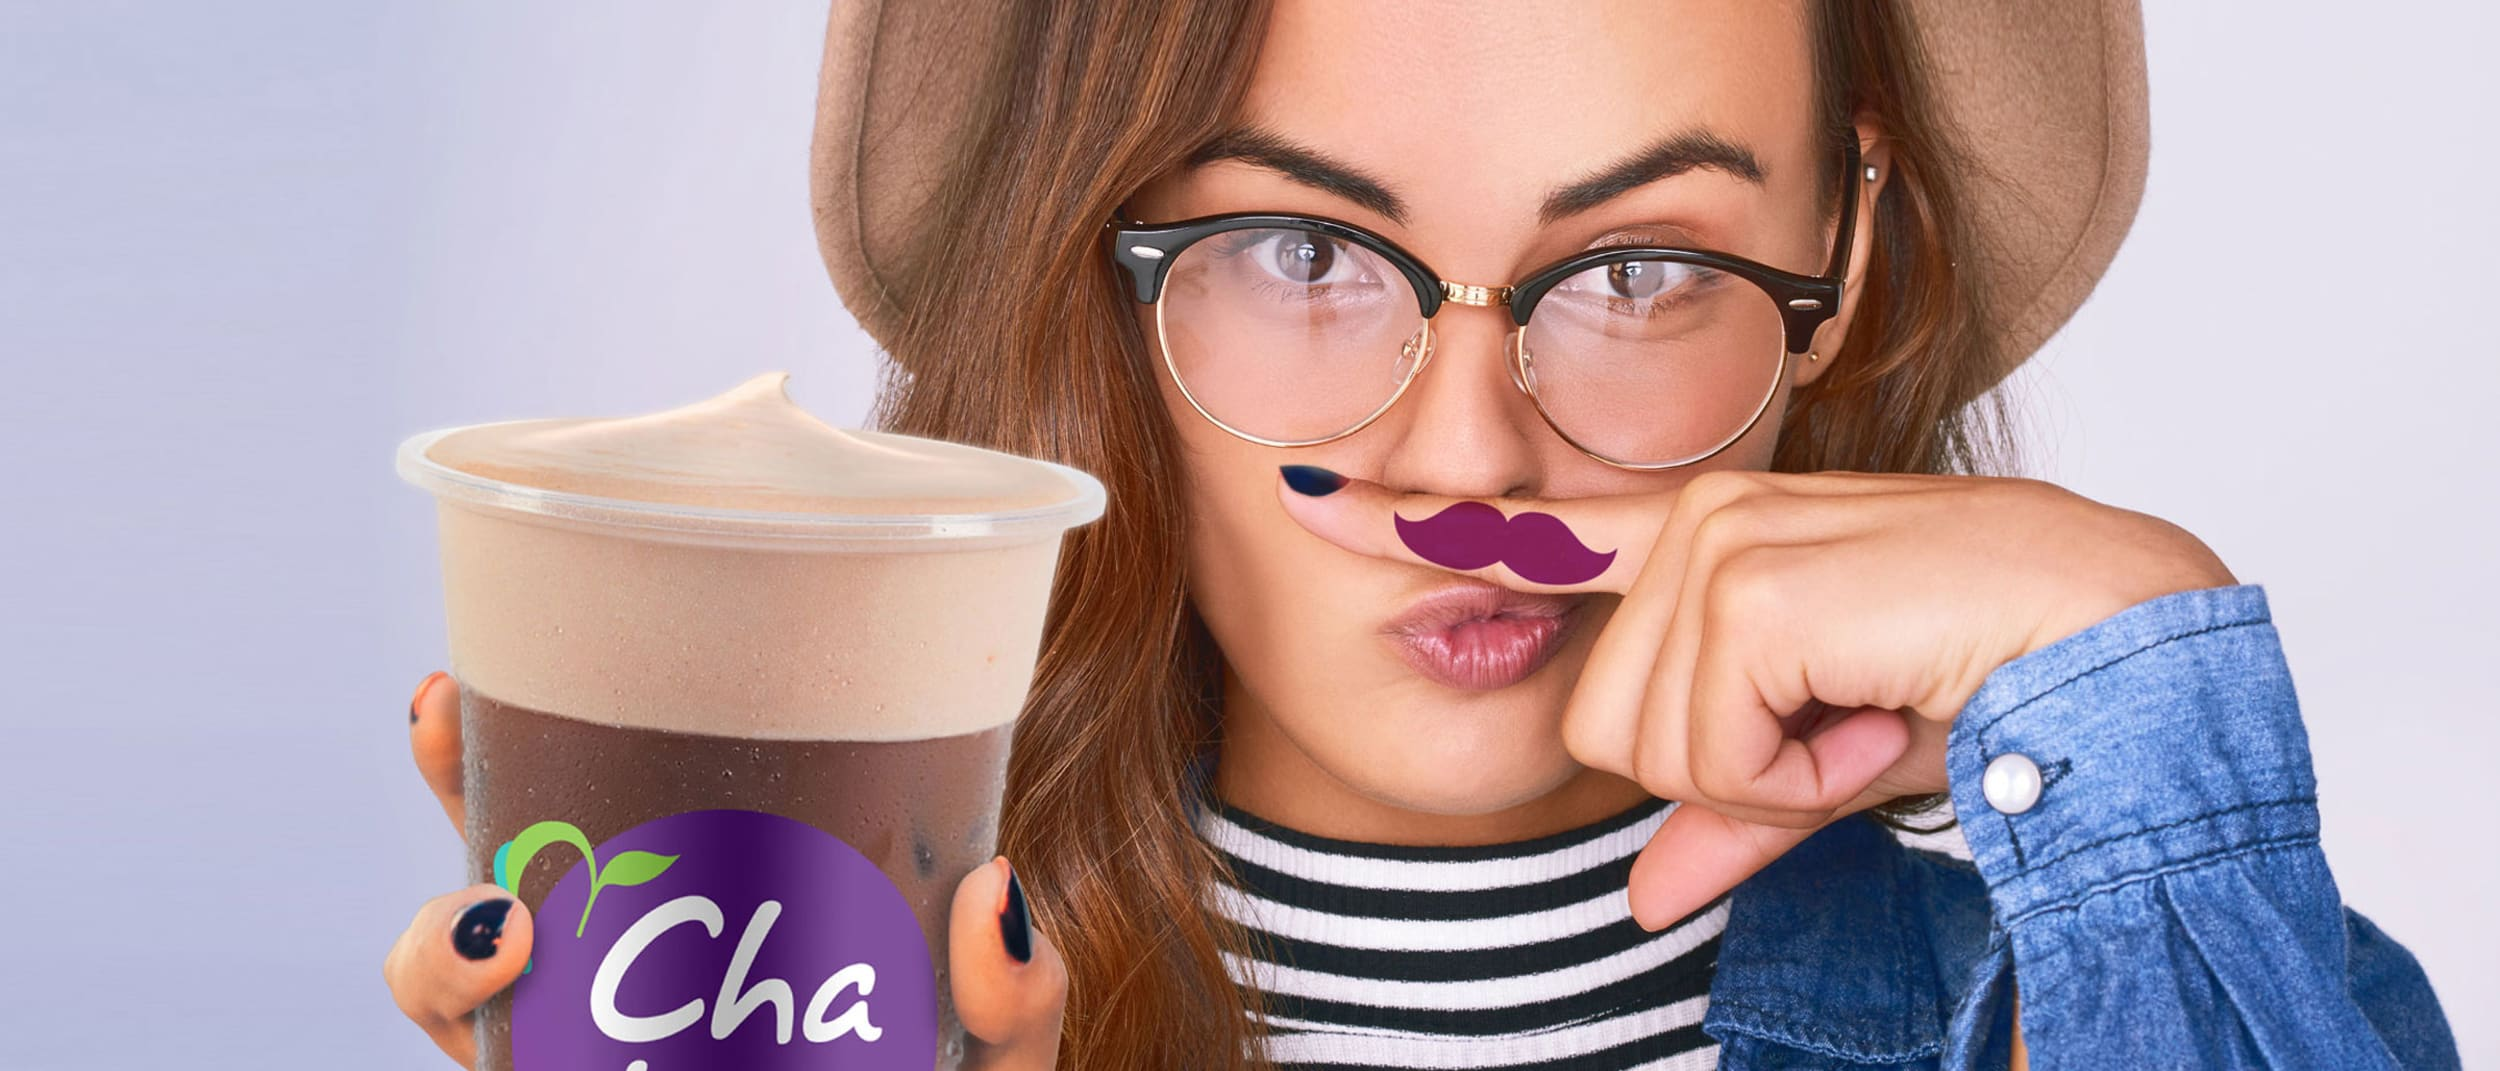 Chatime: sweet dreams are made of Chocolate Chastache